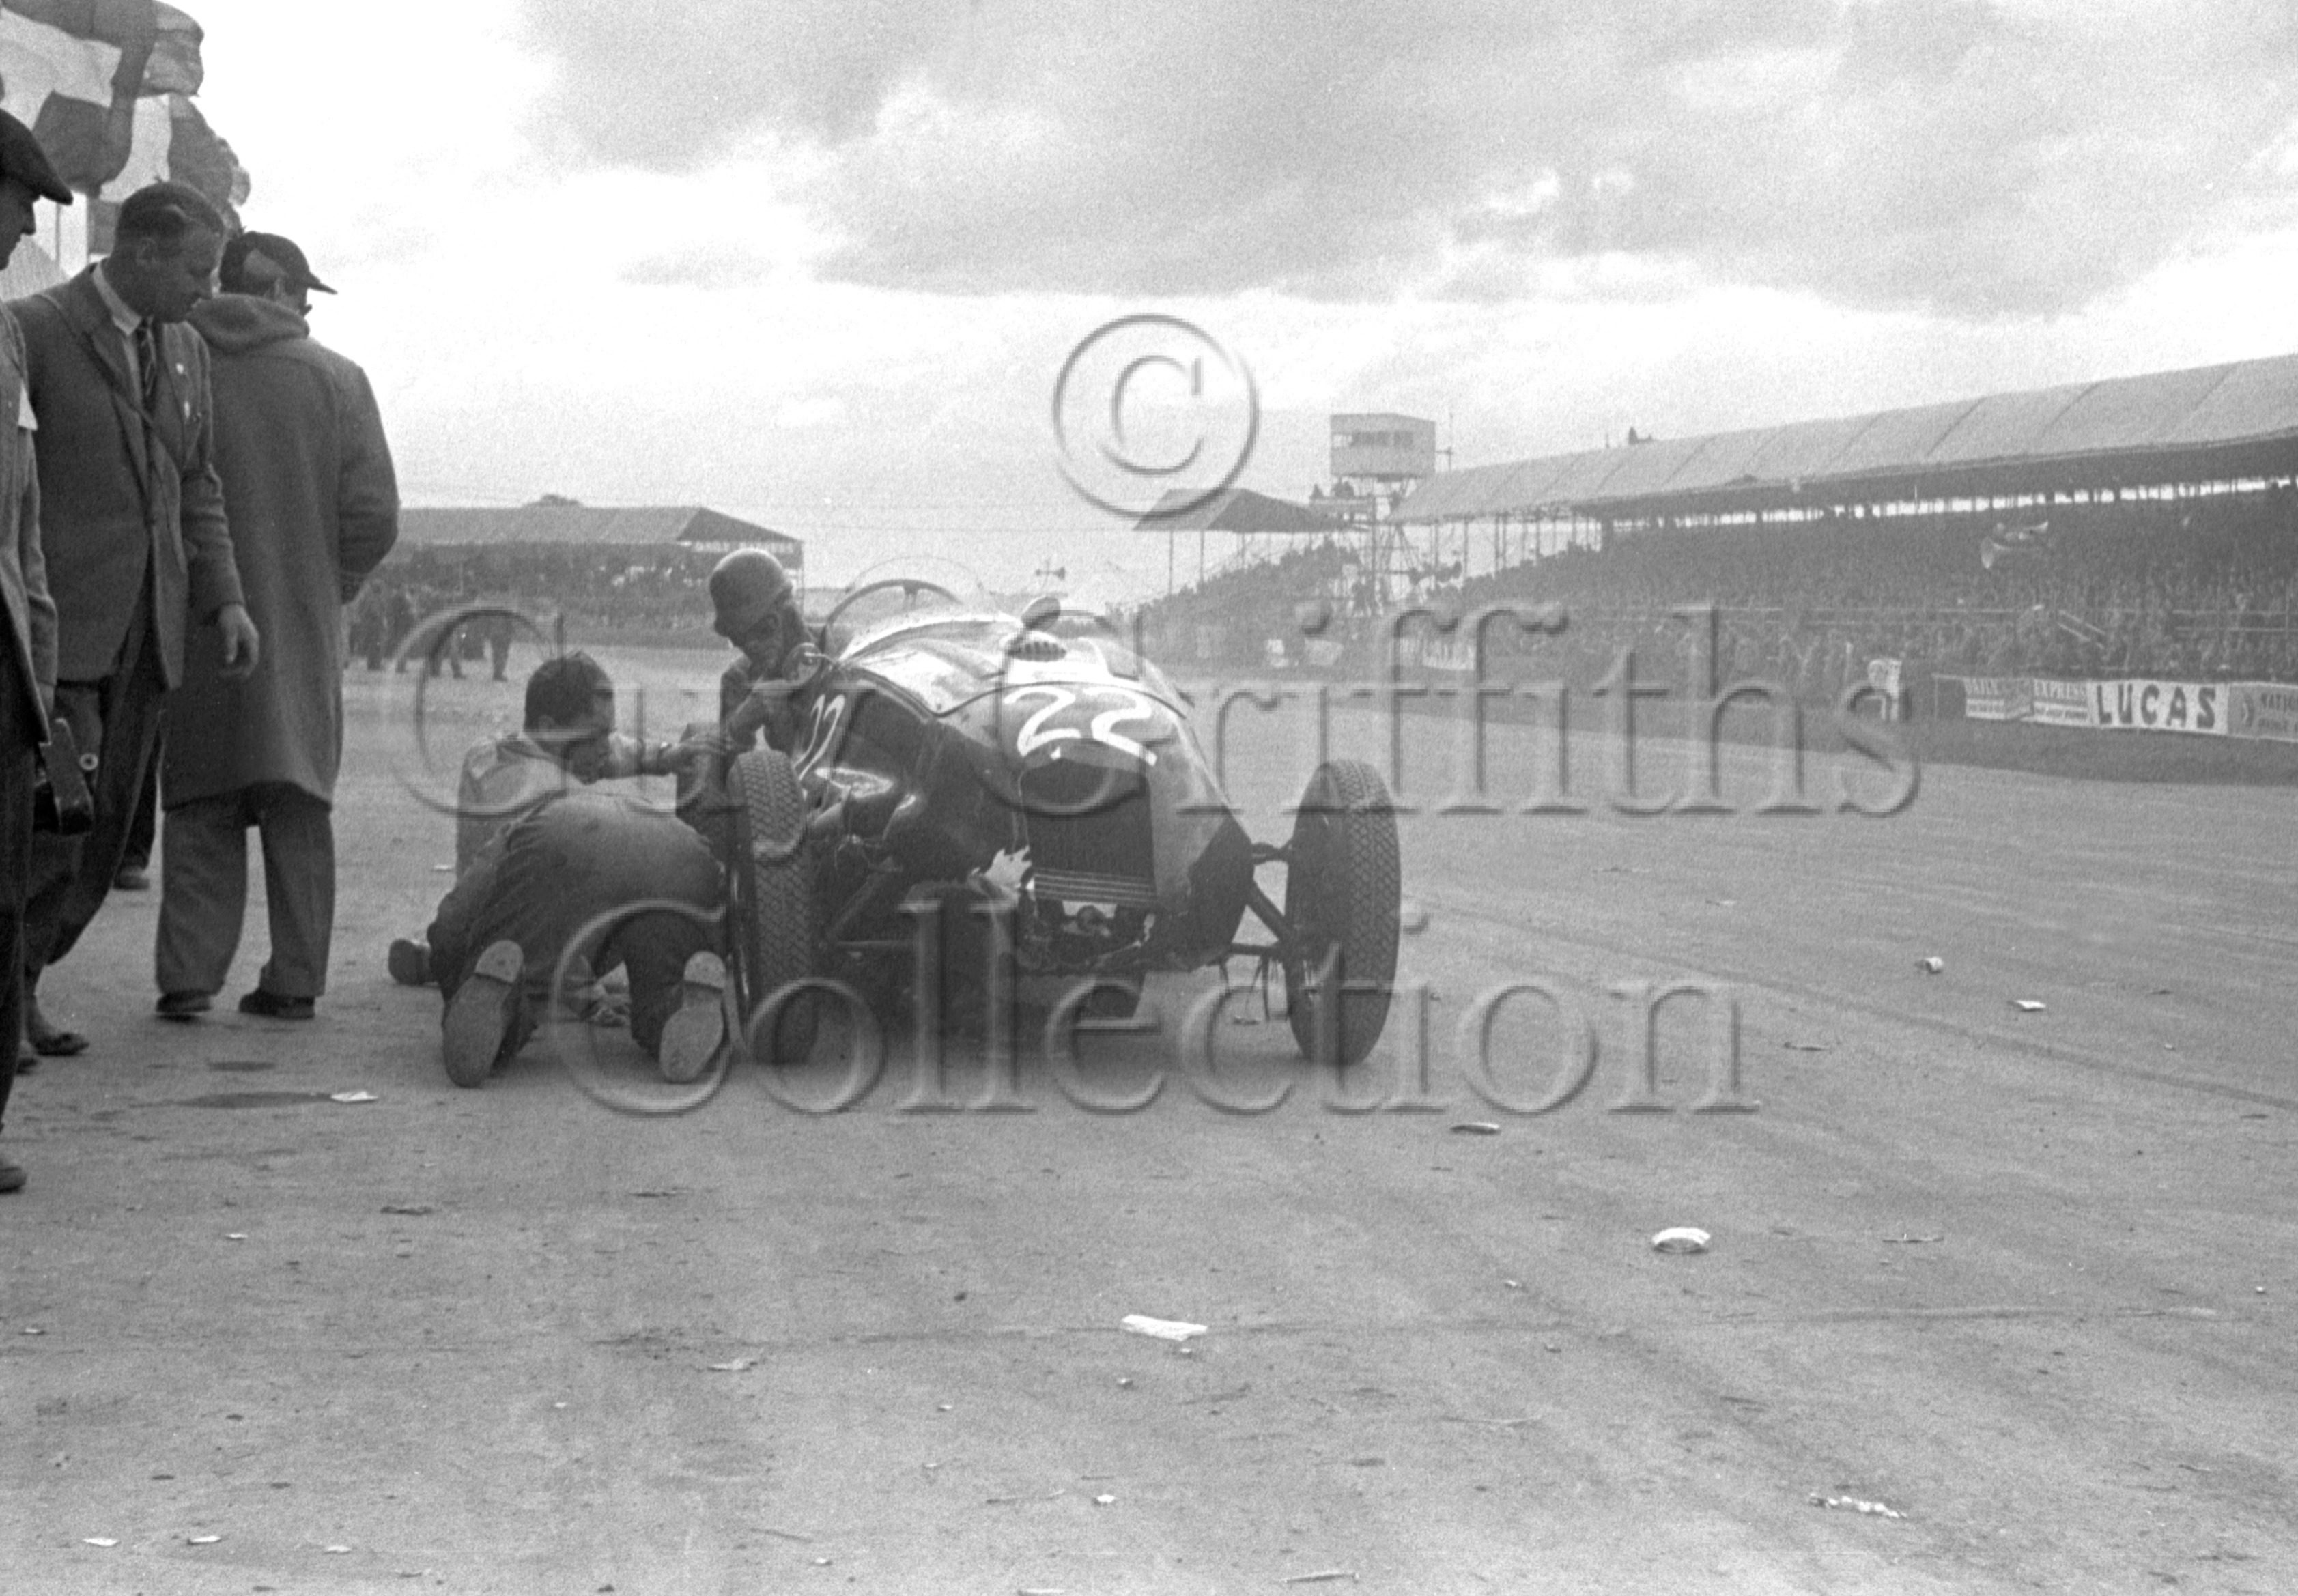 54-292–T-Crook–Frazer-Nash–Silverstone–10-05-1952.jpg - The Guy Griffiths Collection